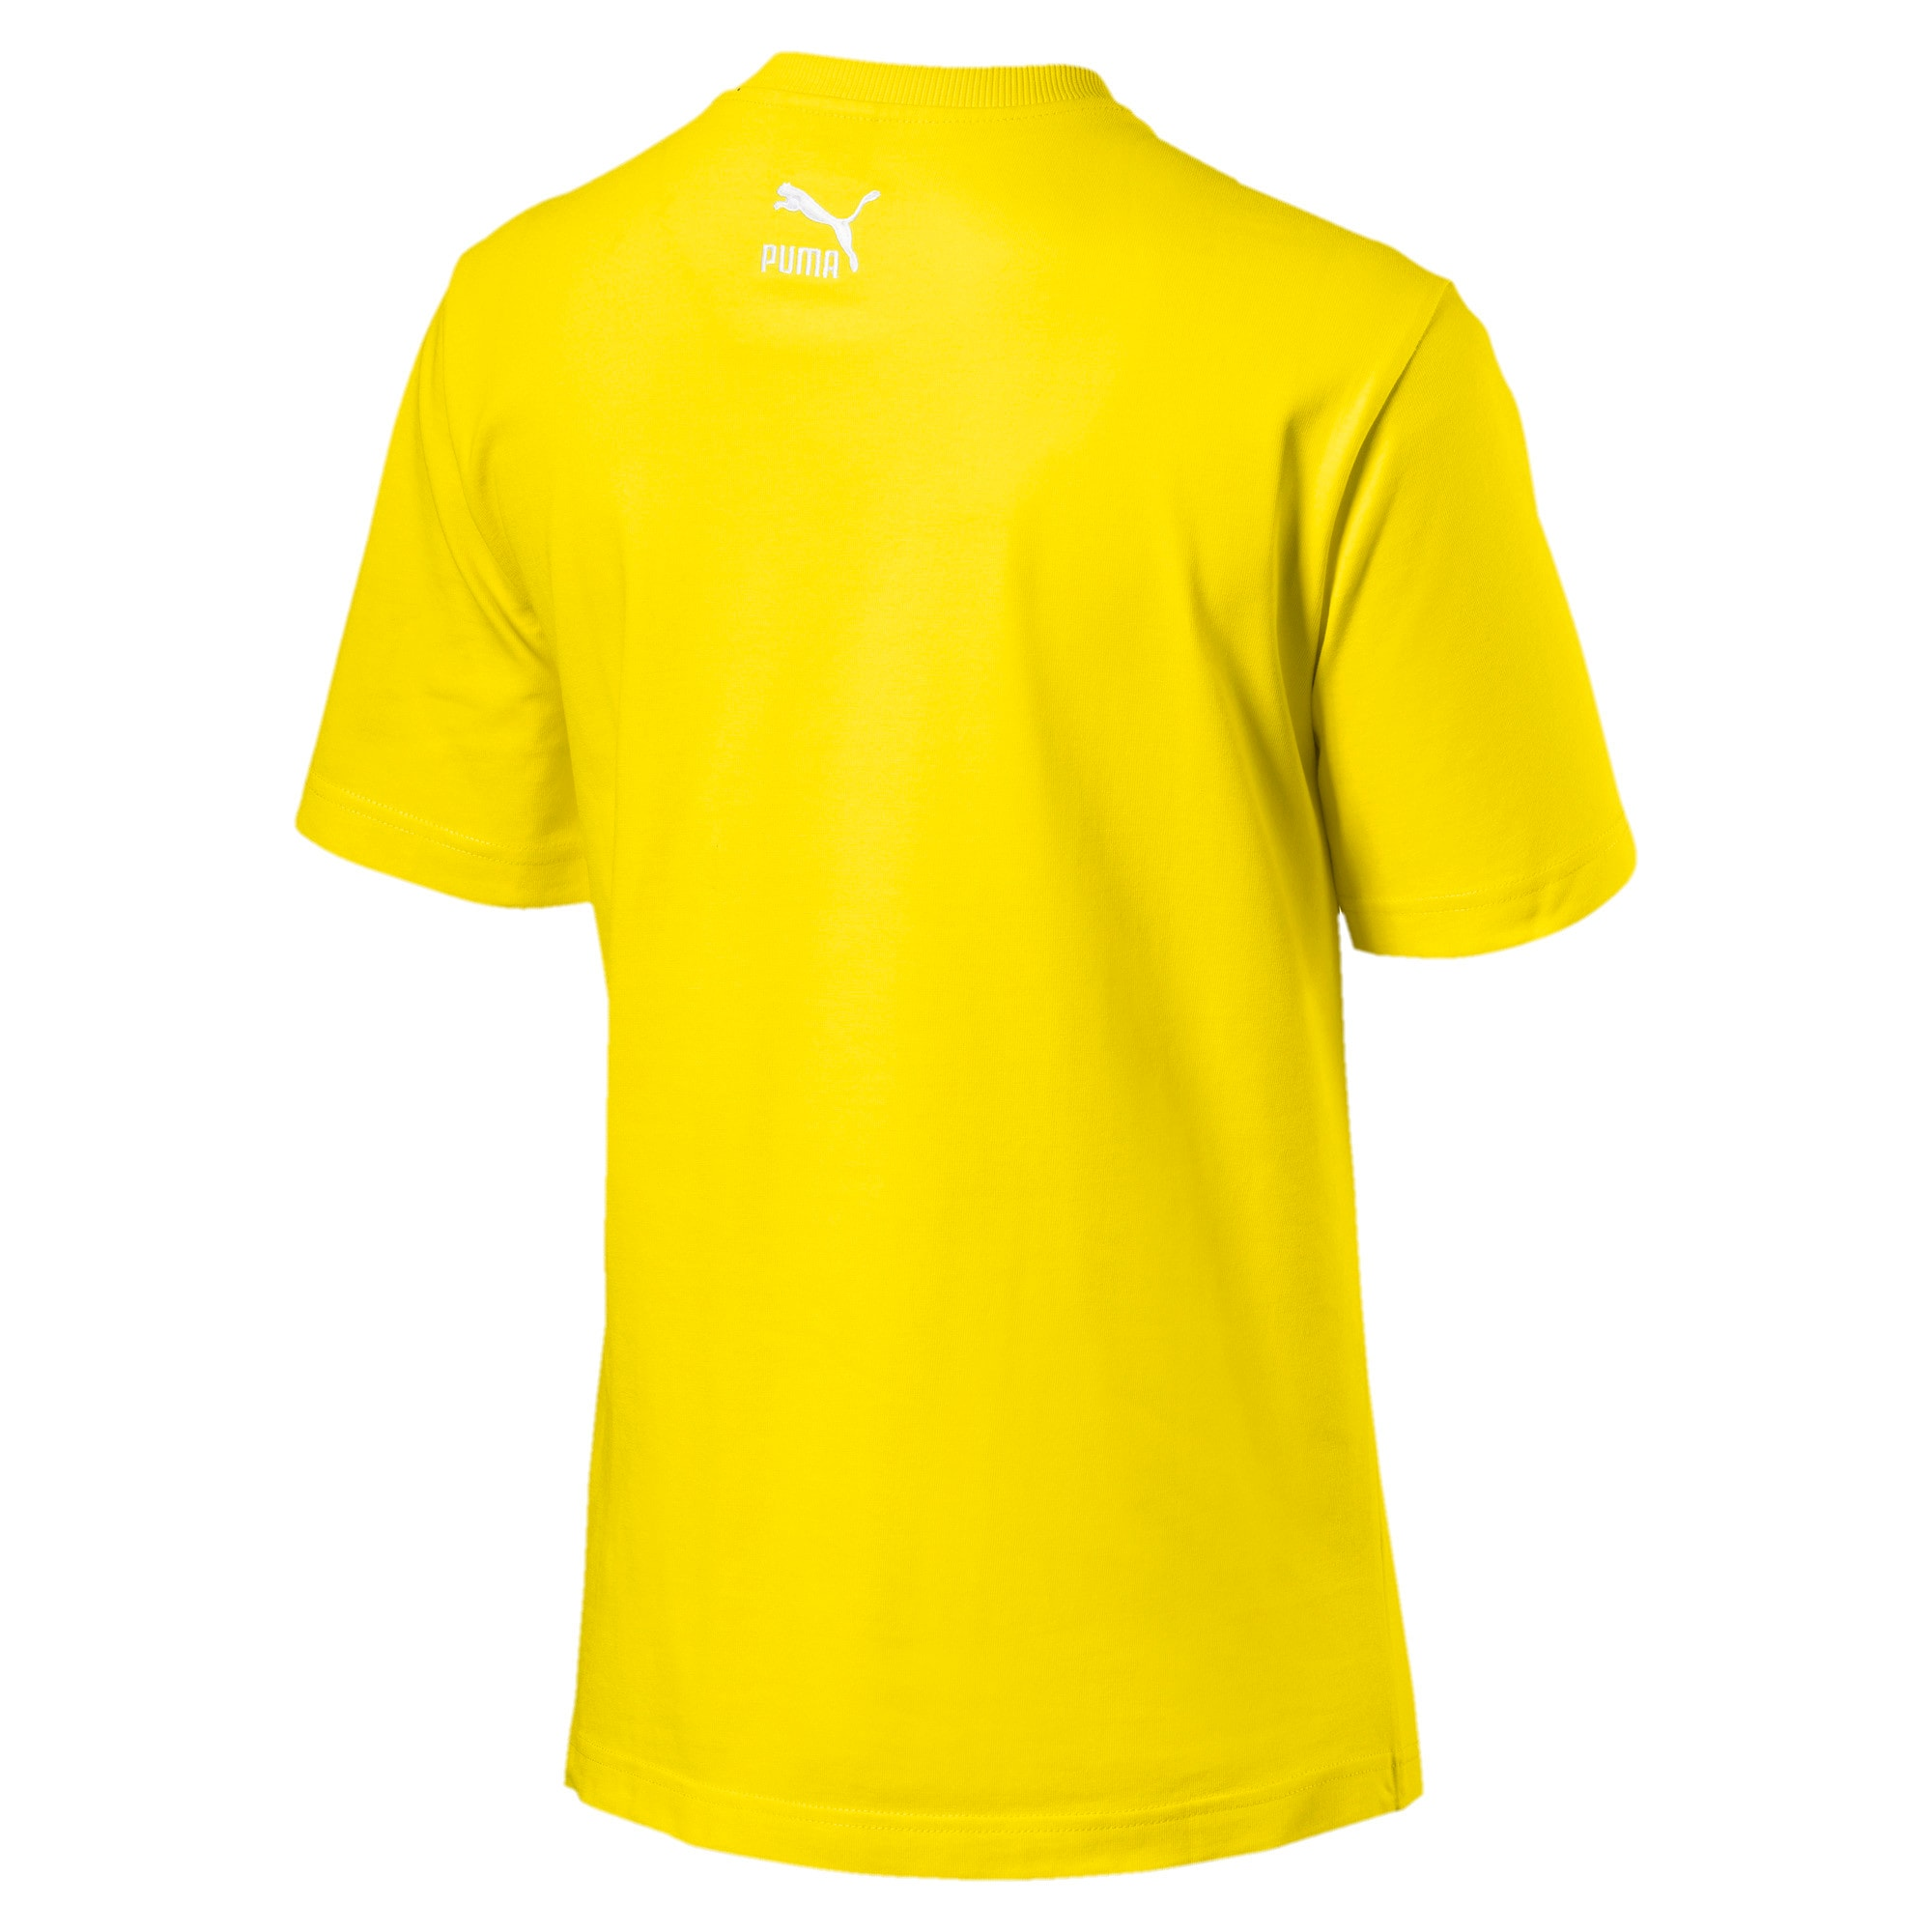 Thumbnail 2 of OG Women's Tee, Blazing Yellow, medium